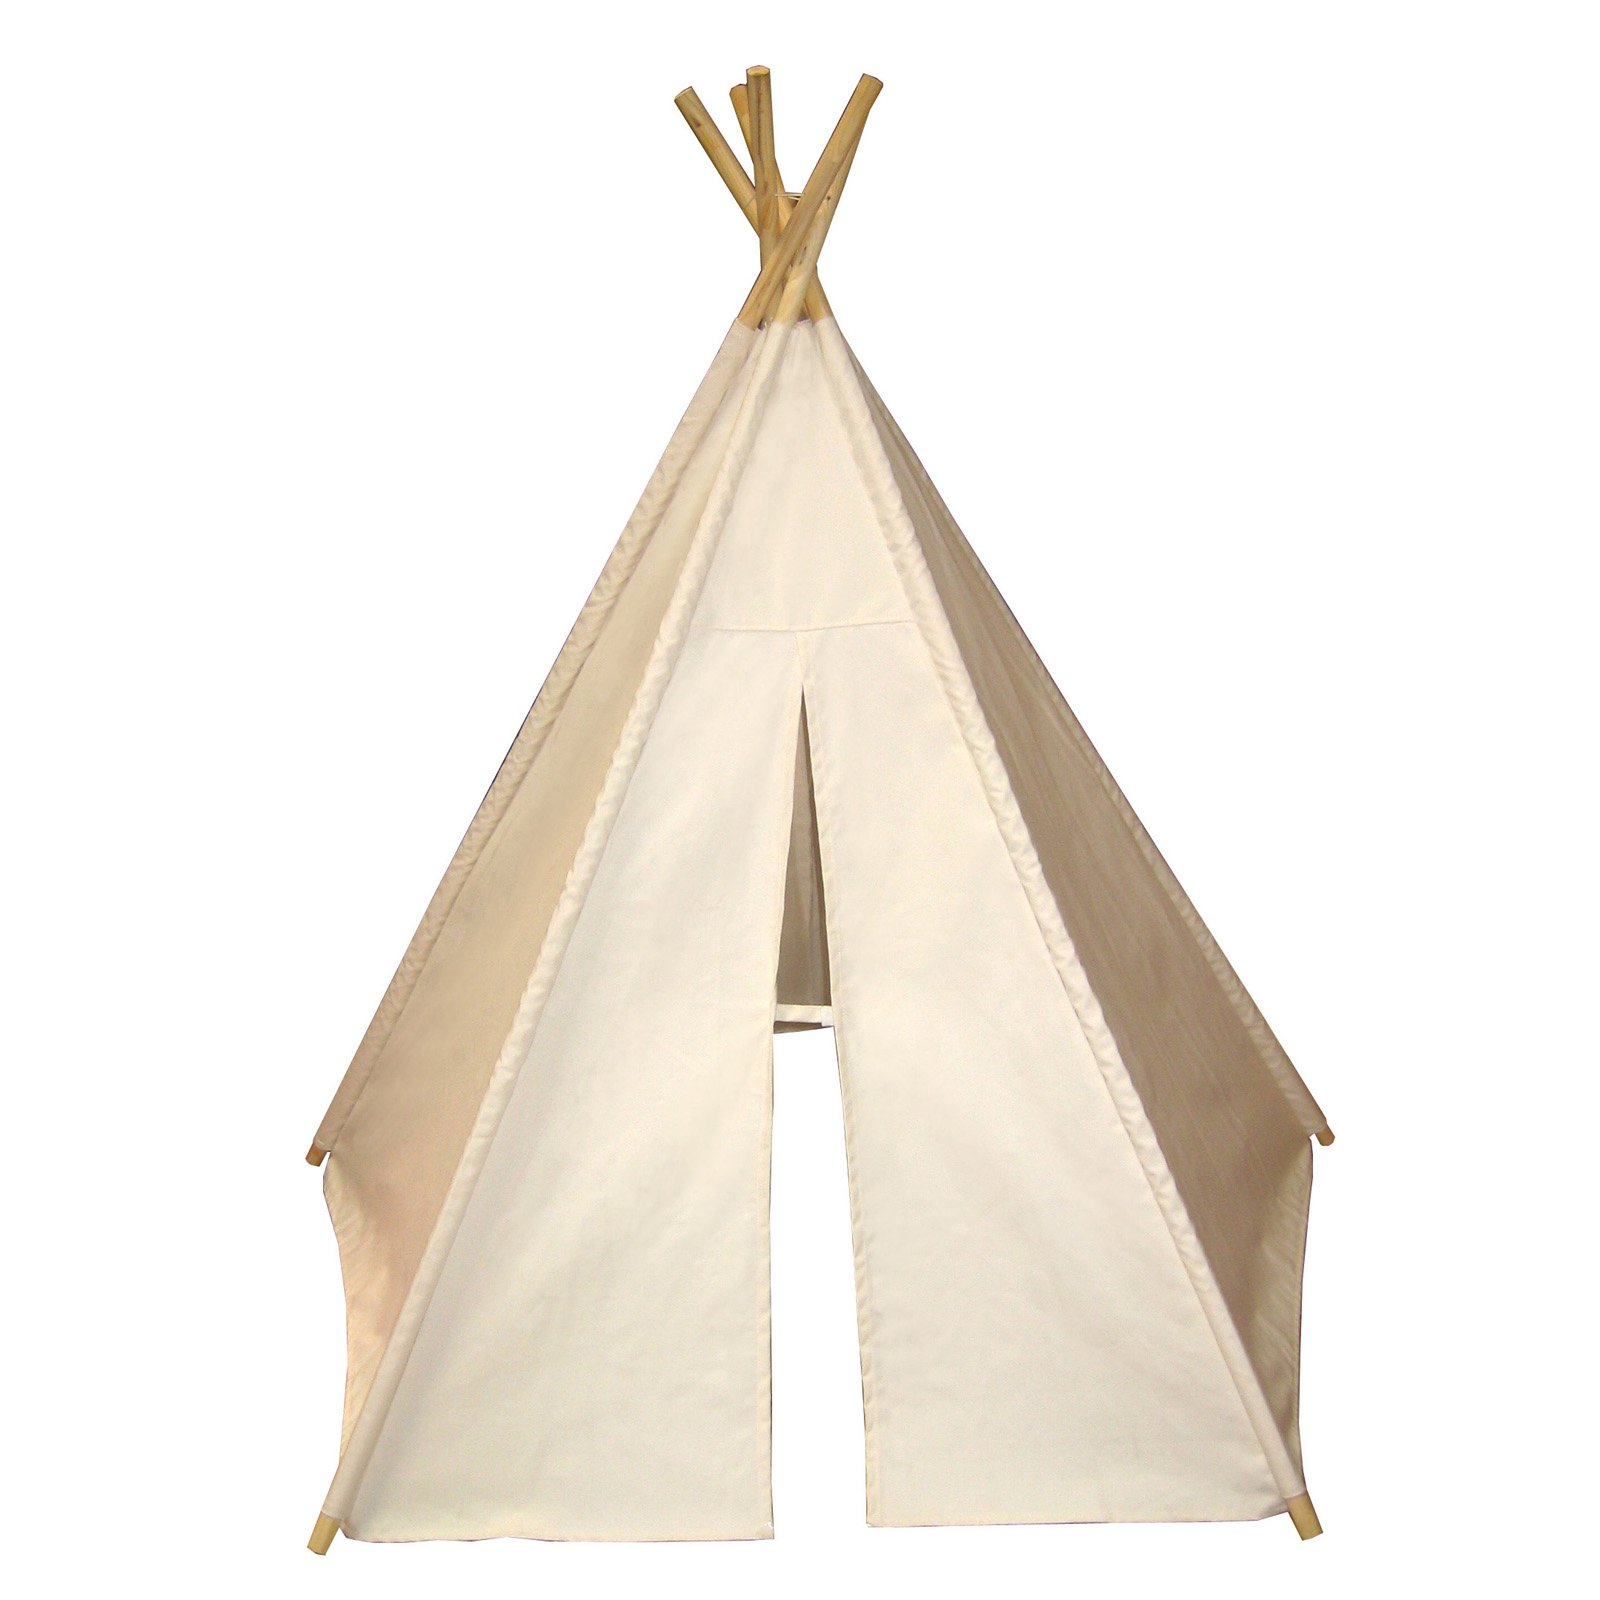 Dexton Kids DX3006 6' Hideaway Five Panel Teepee in Natural DX3006